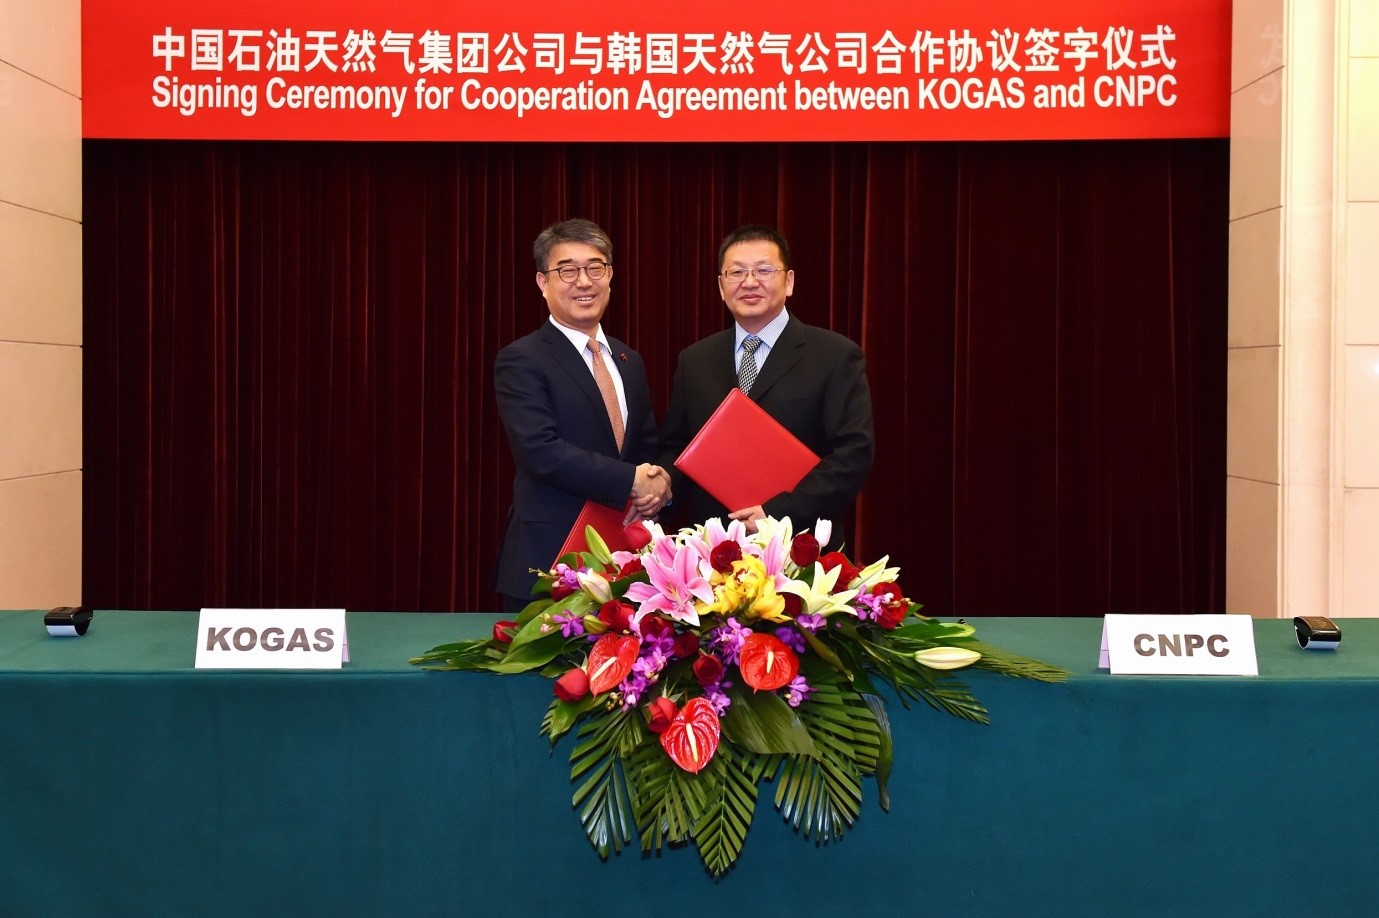 KOGAS Acting President Ahn Wan-gi (left) and CNPC President Zhang Jianhua pose pose after signing an MOU for cooperation in natural gas business in Beijing on Dec. 15.